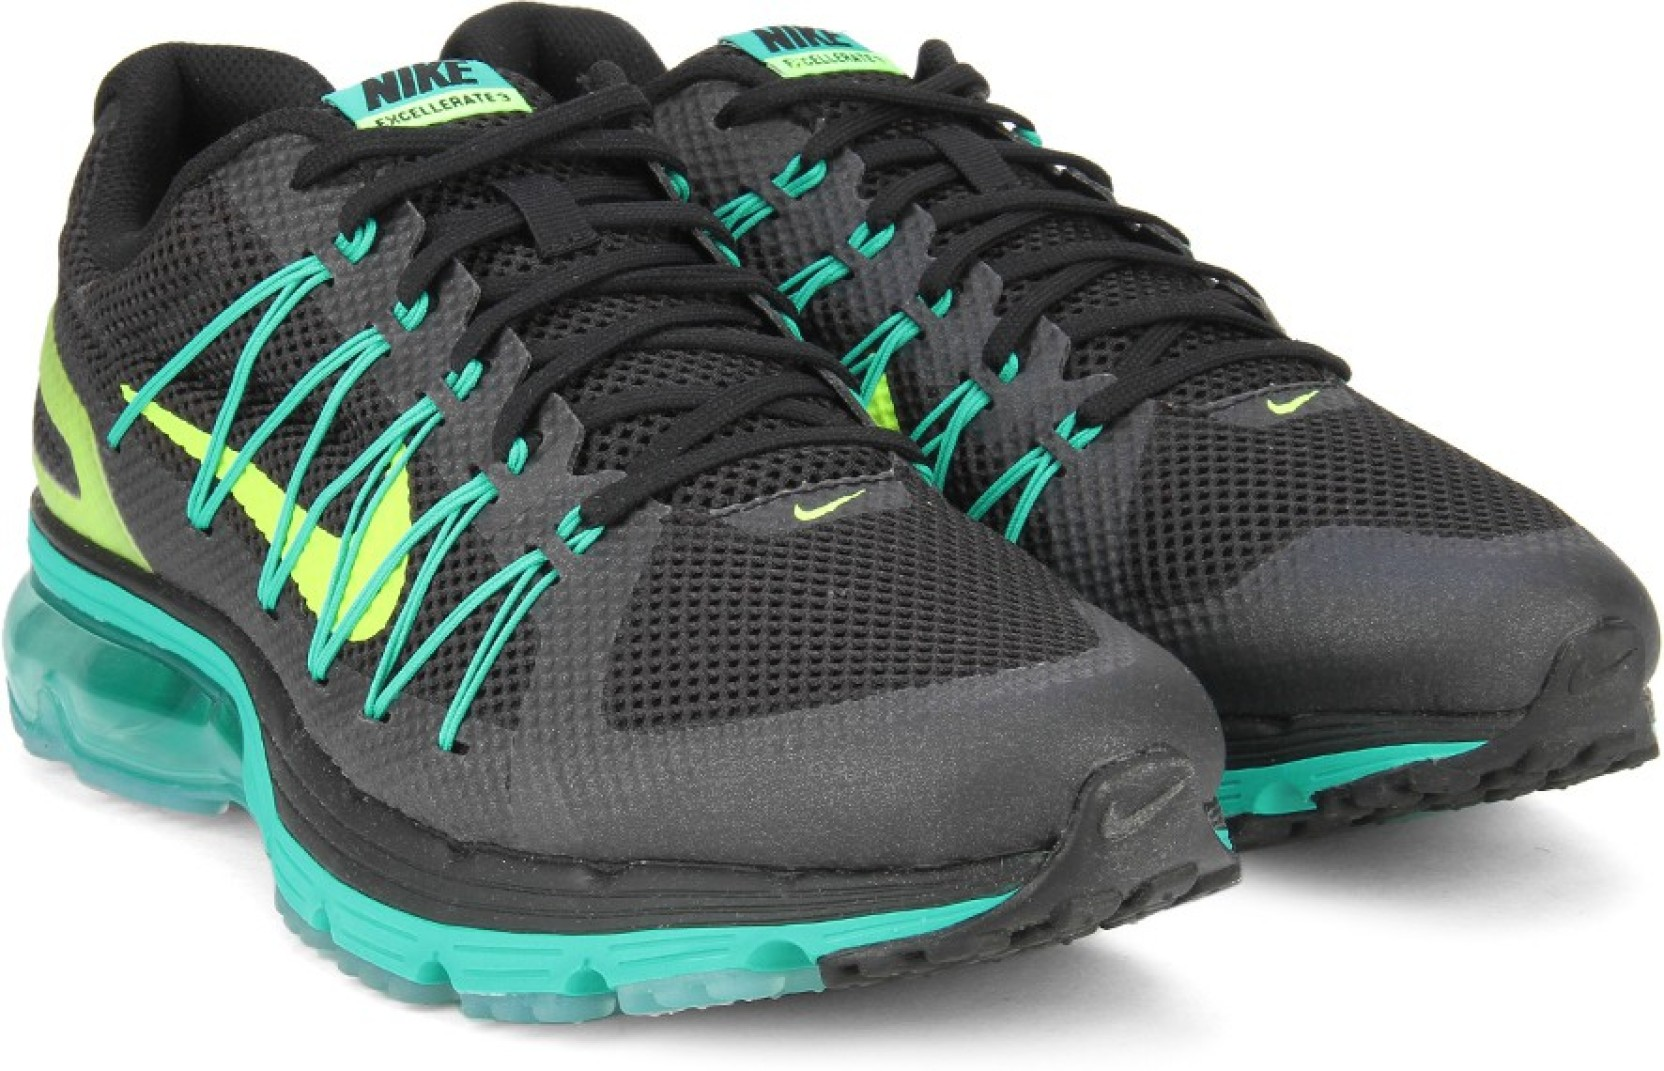 d59477306b16c Nike AIR MAX EXCELLERATE 3 Running Shoes For Men - Buy BLACK GREEN ...